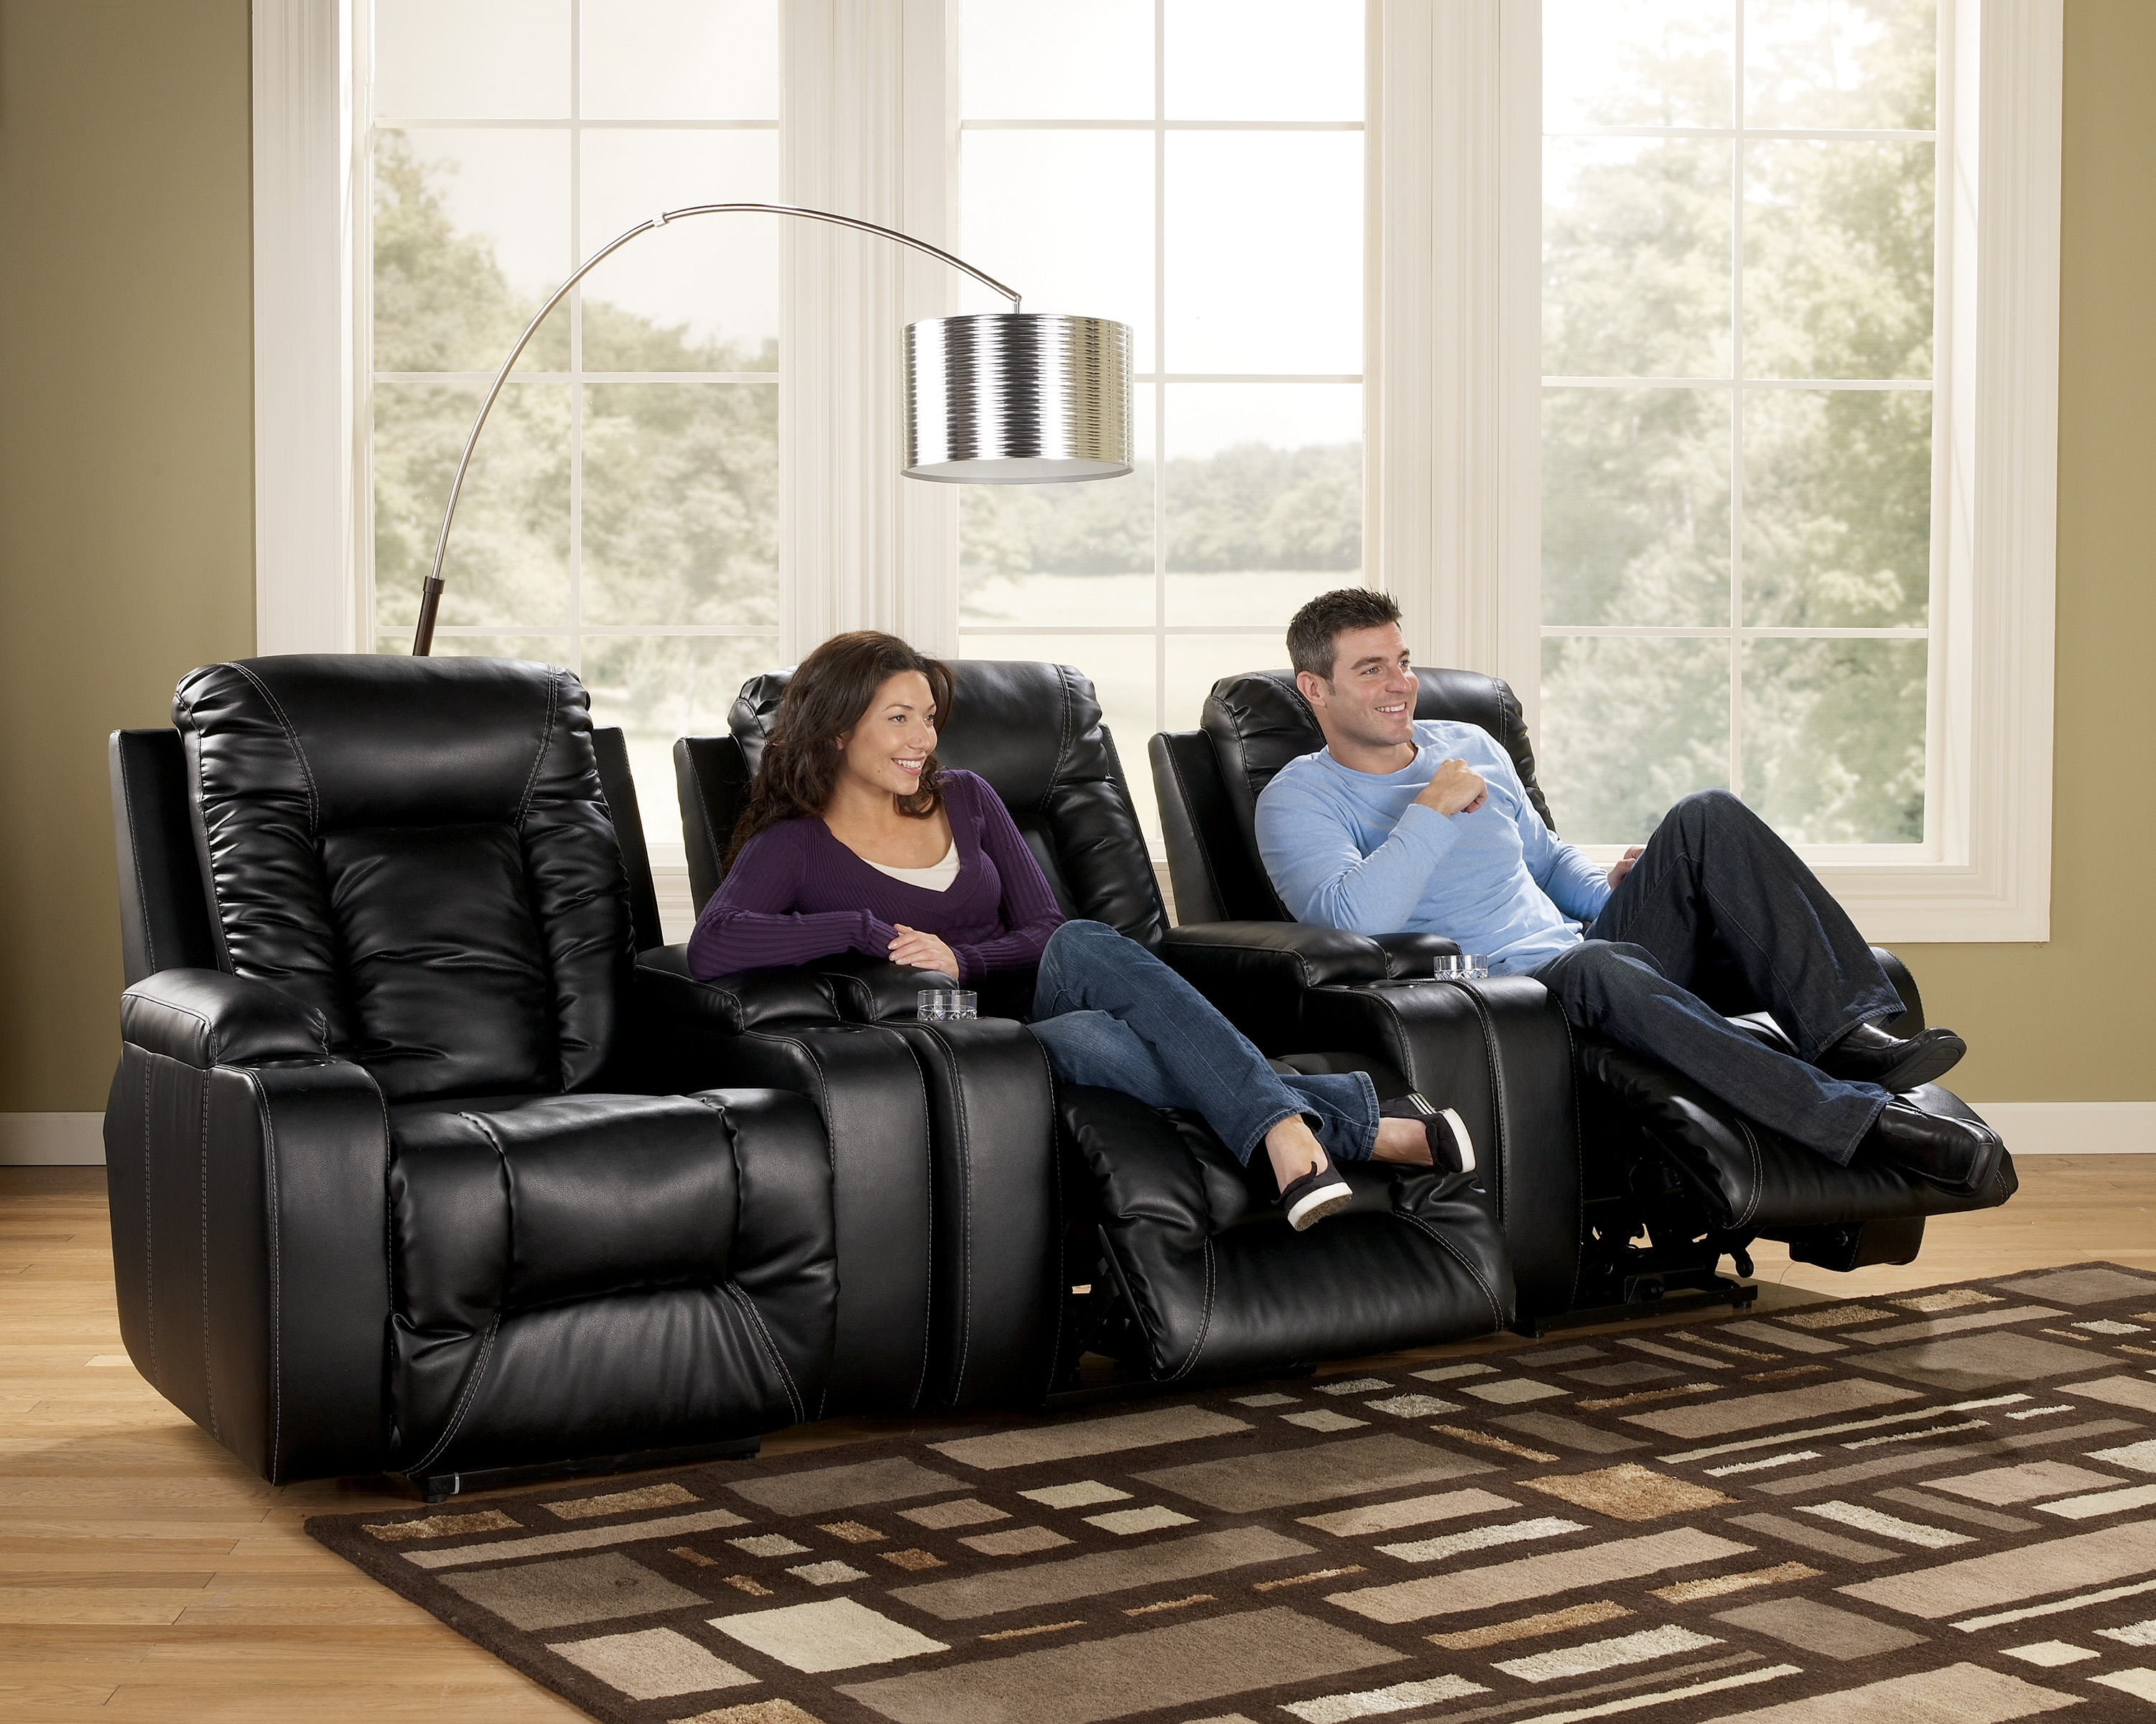 matinee durablend eclipse contemporary 3 piece theater seating